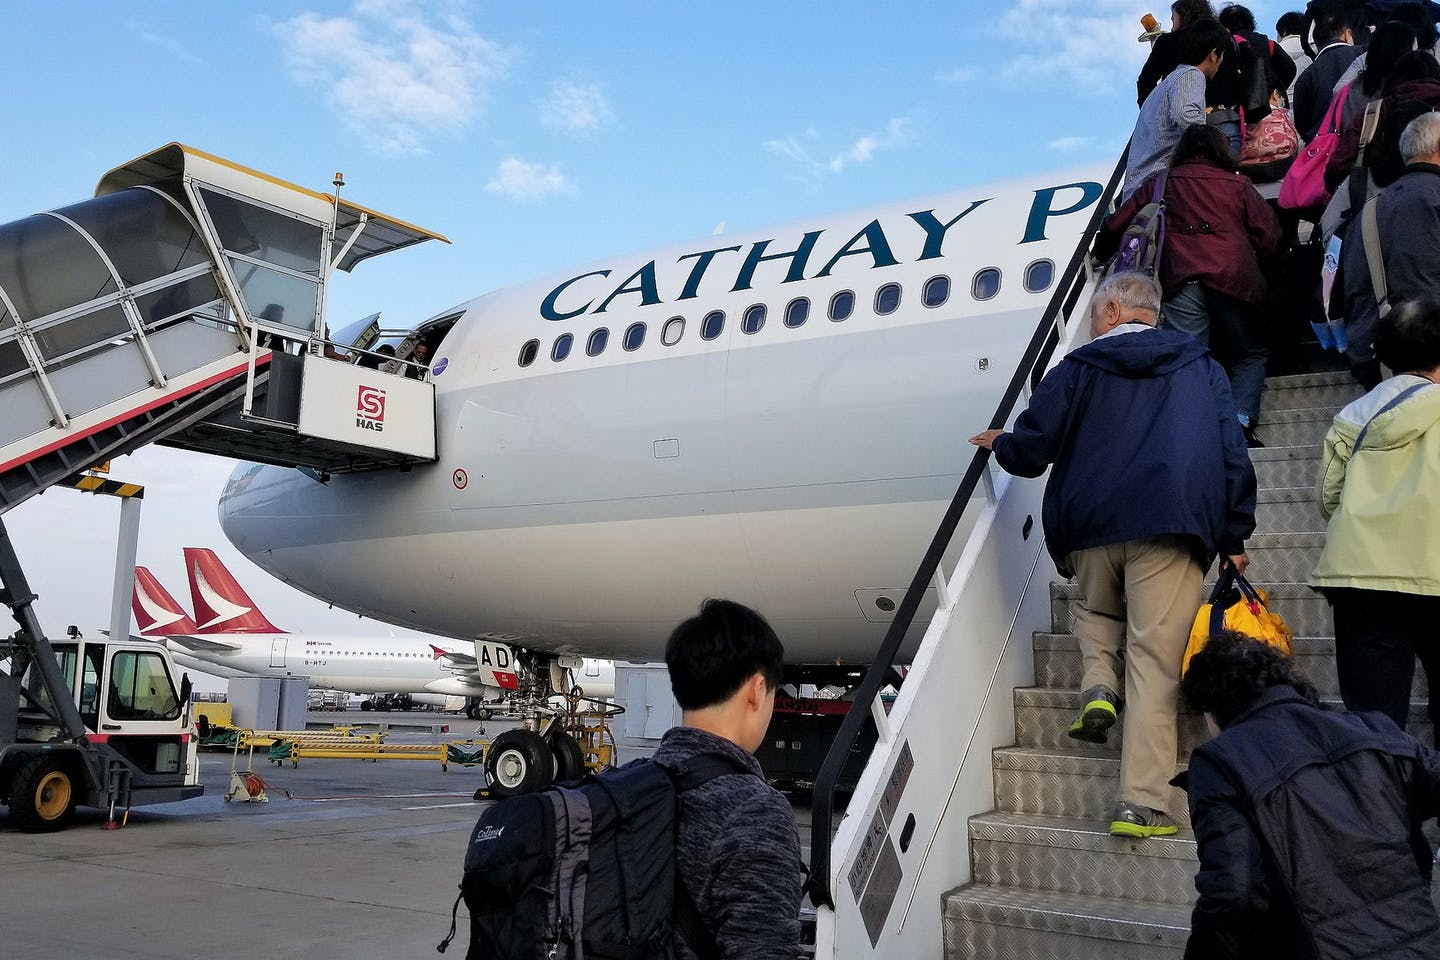 Travellers board a Cathay Pacific flight